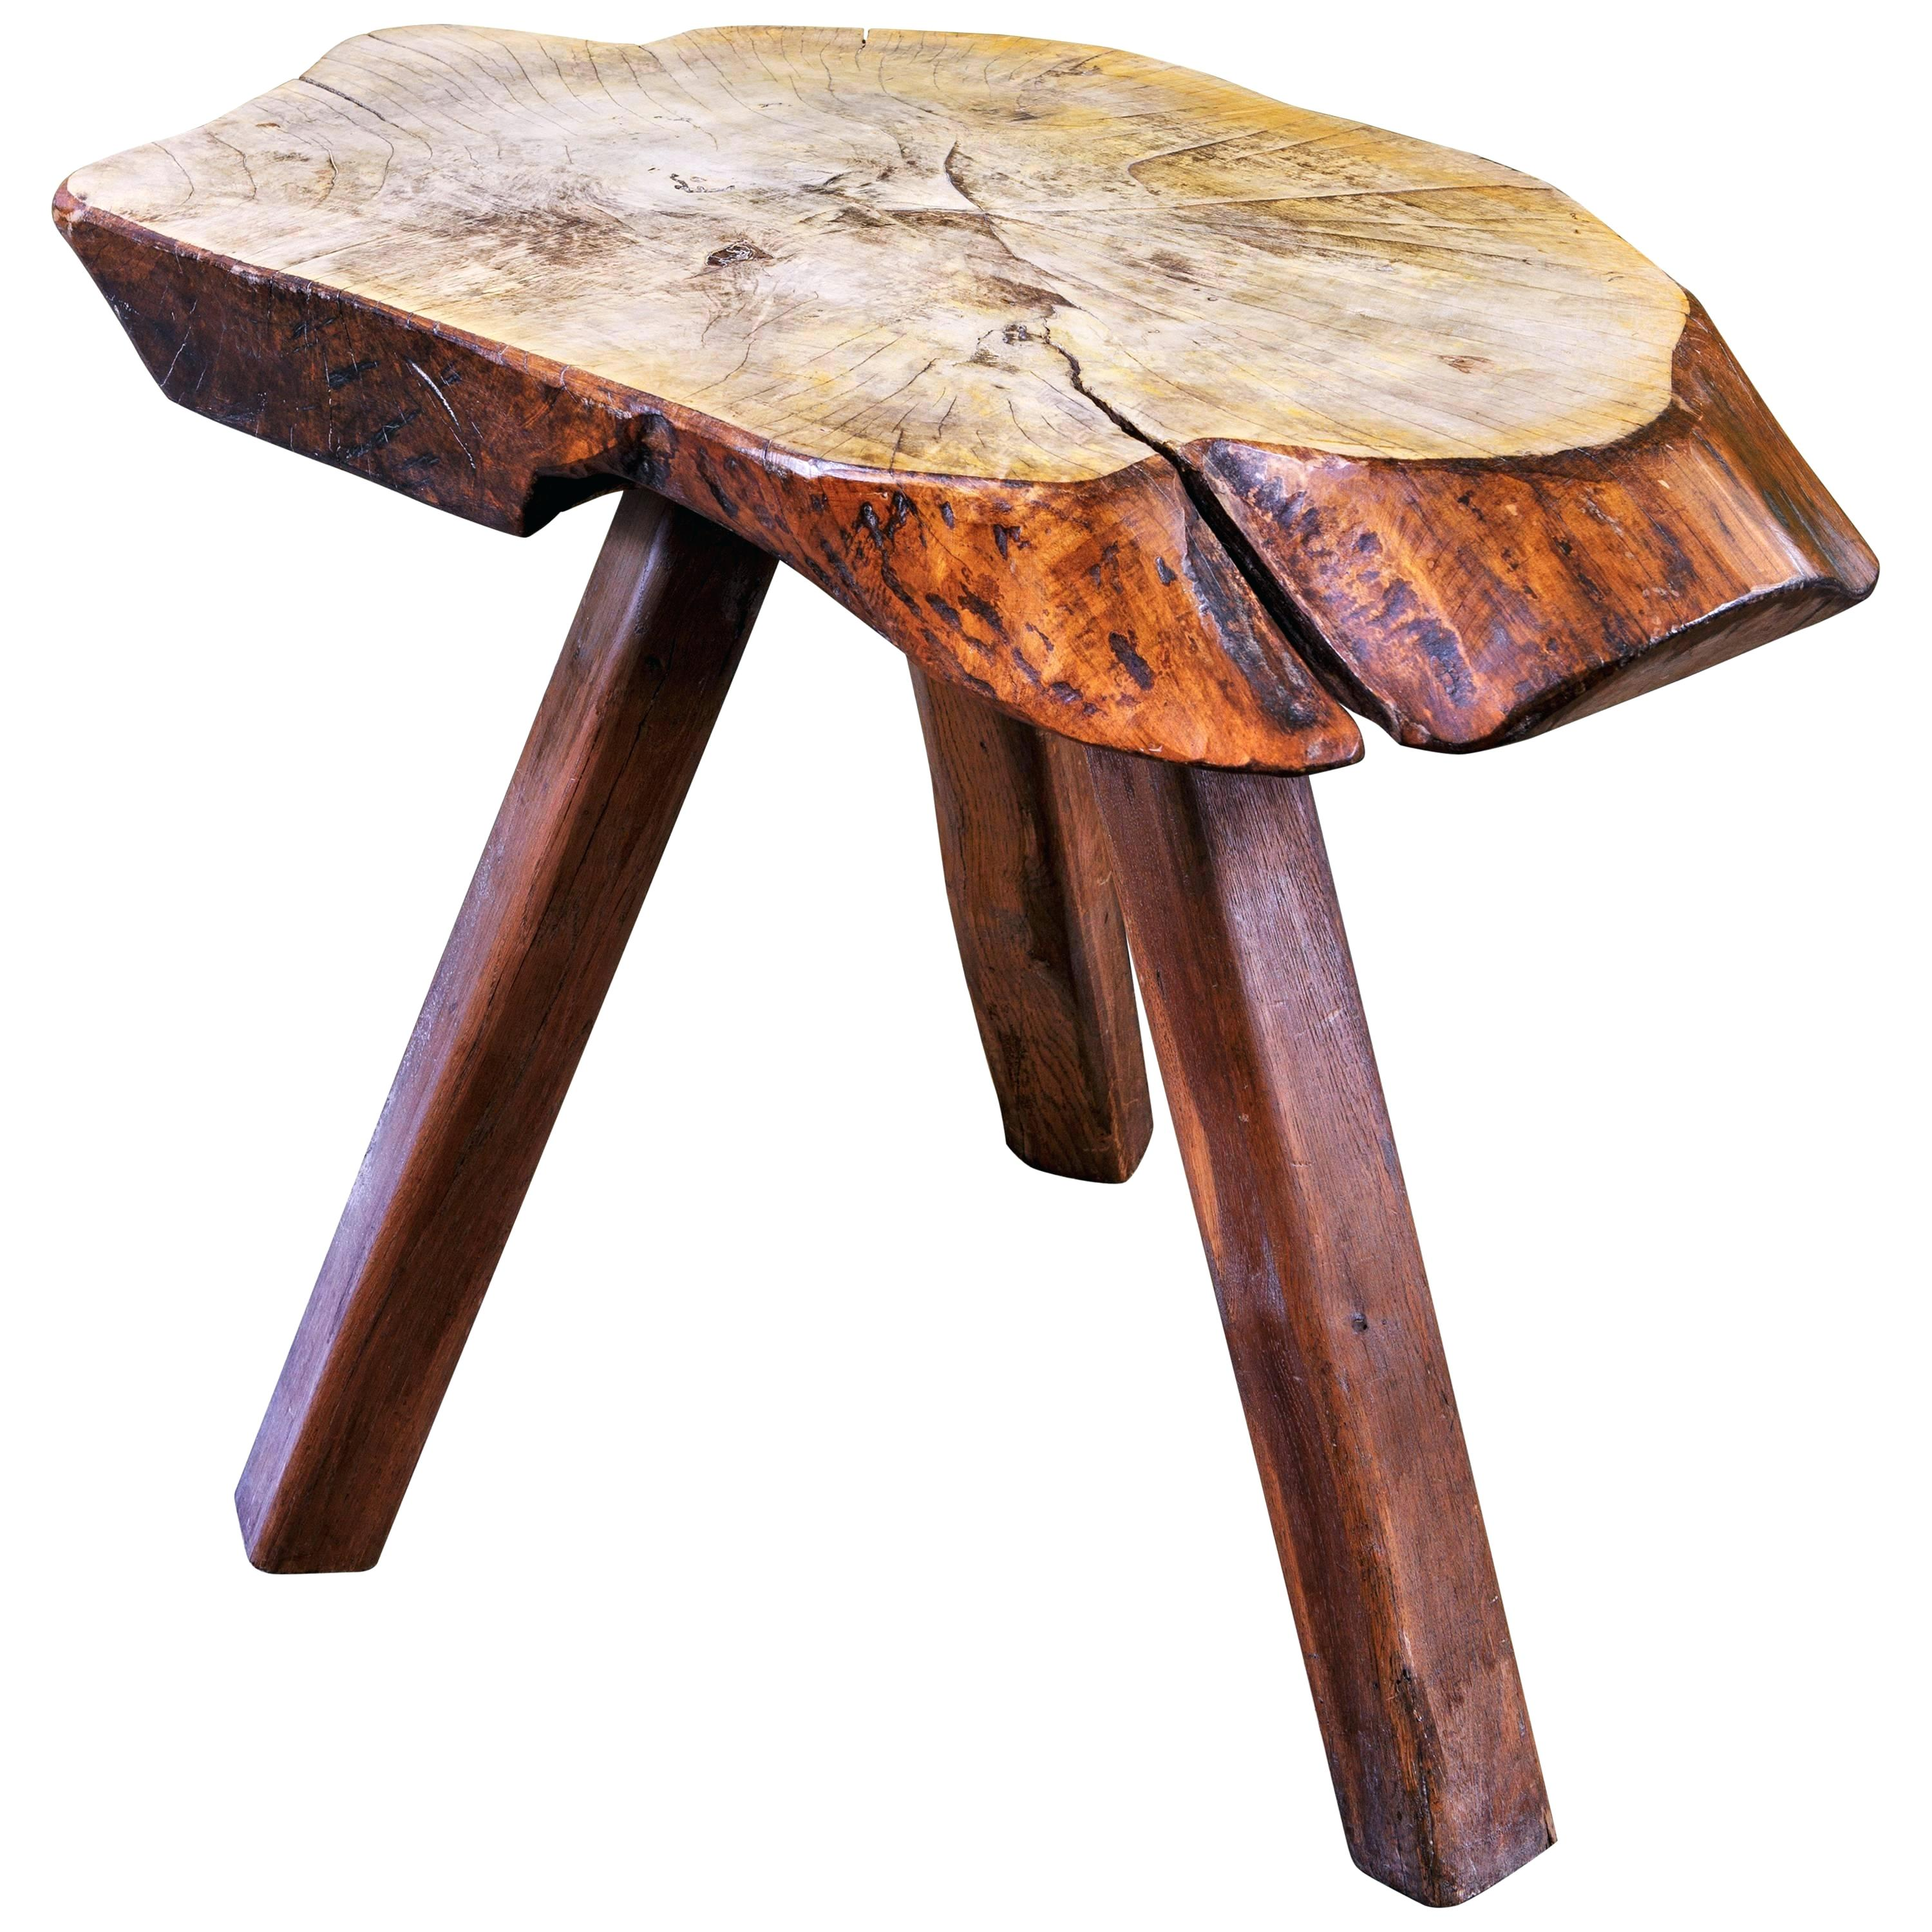 wood slab end table live edge top side walnut pedrogoes rustic with three legs for accent the owl ash coffee acrylic toronto stool jcpenney curtains battery operated lamp powered